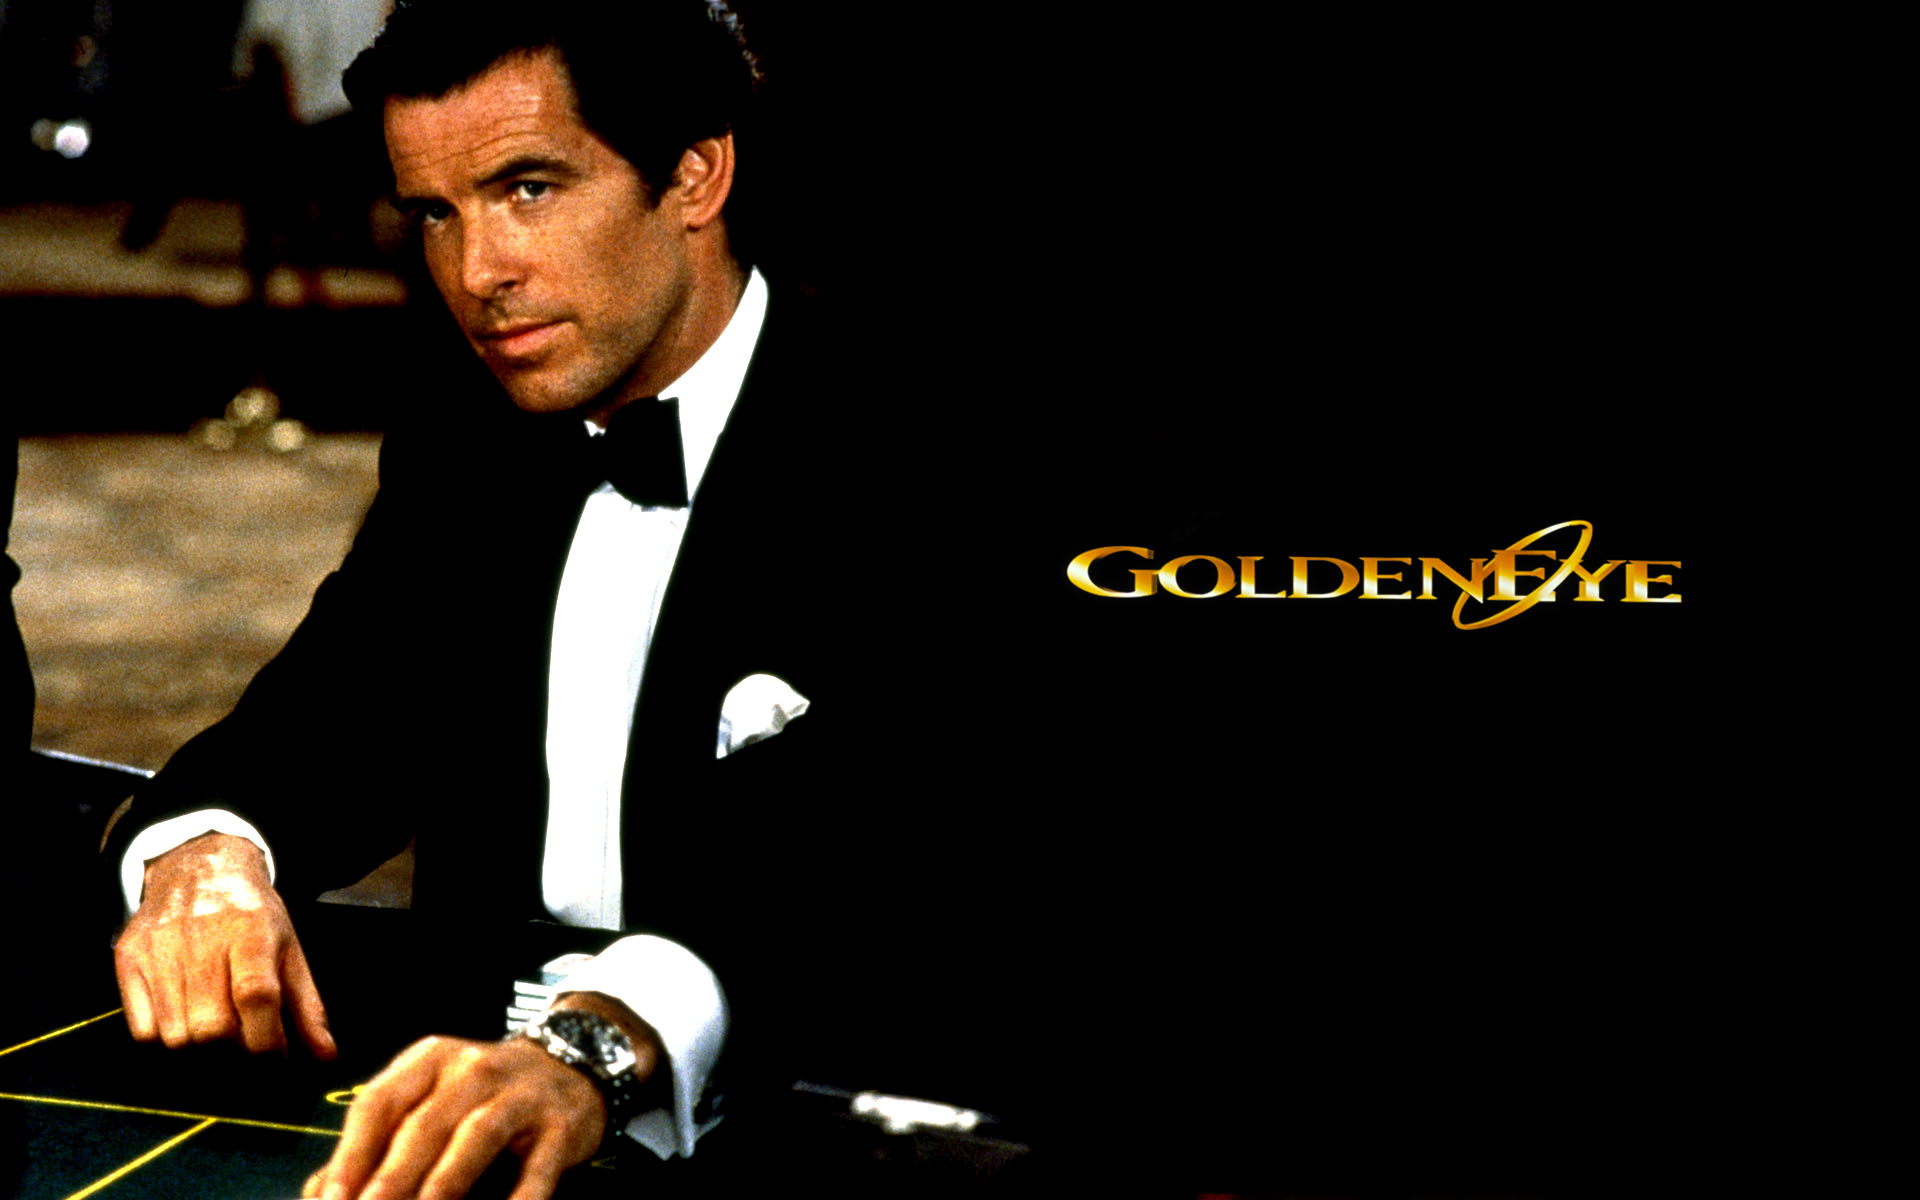 Tuxedo Wallpaper Hd 1995 A Golden Year The 20th Anniversary Of Goldeneye And